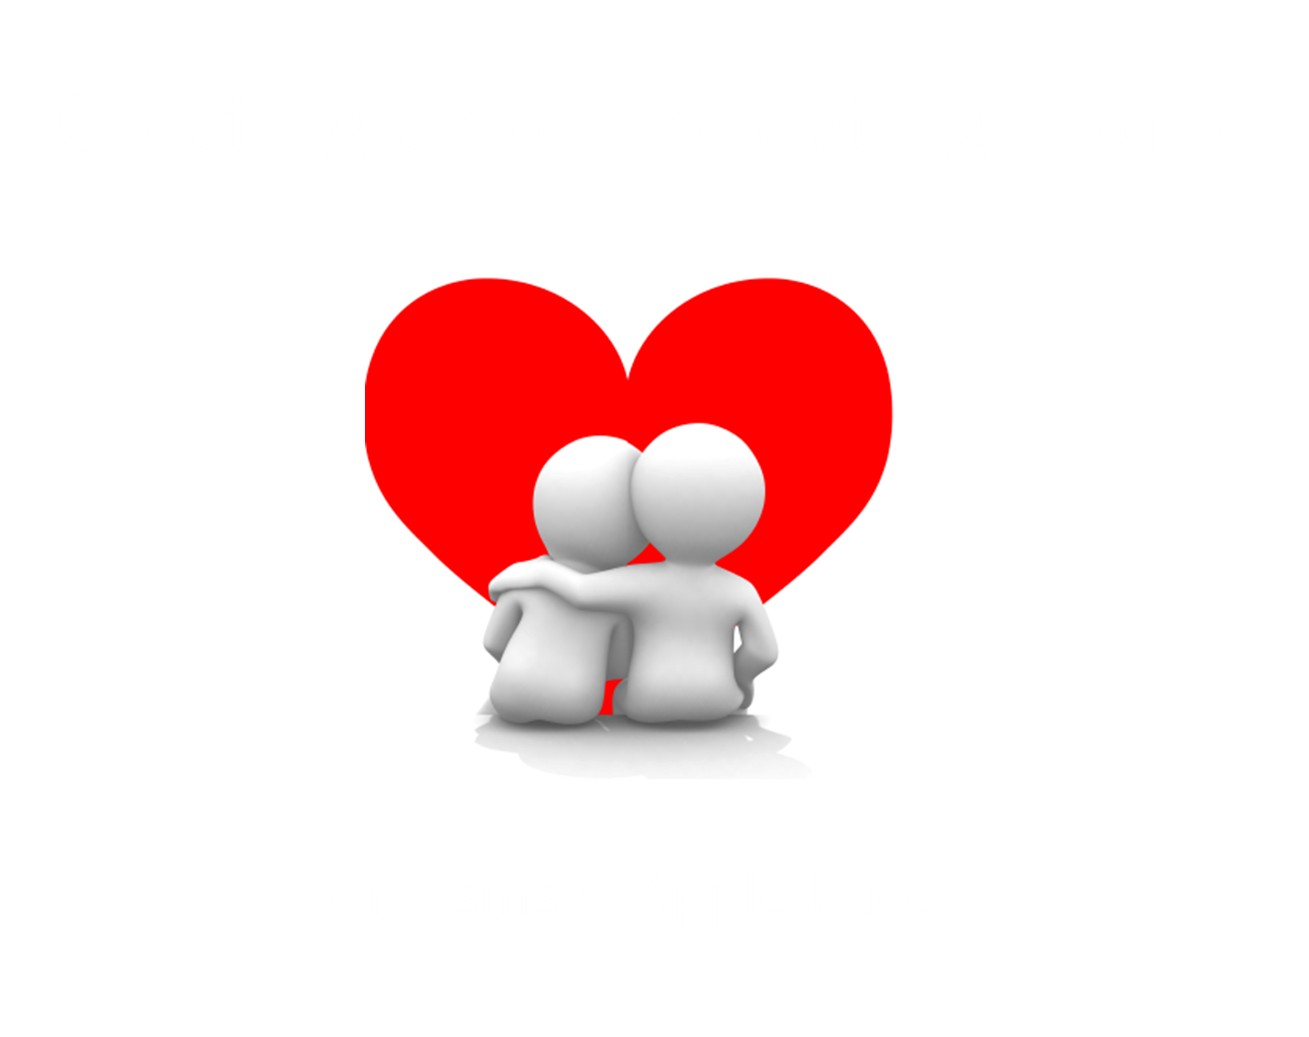 creative online dating profile 100 dating profile names guaranteed to get you a date is cataloged in bros, christian mingle, dating, eharmony, match, matchcom, okcupid, online dating.